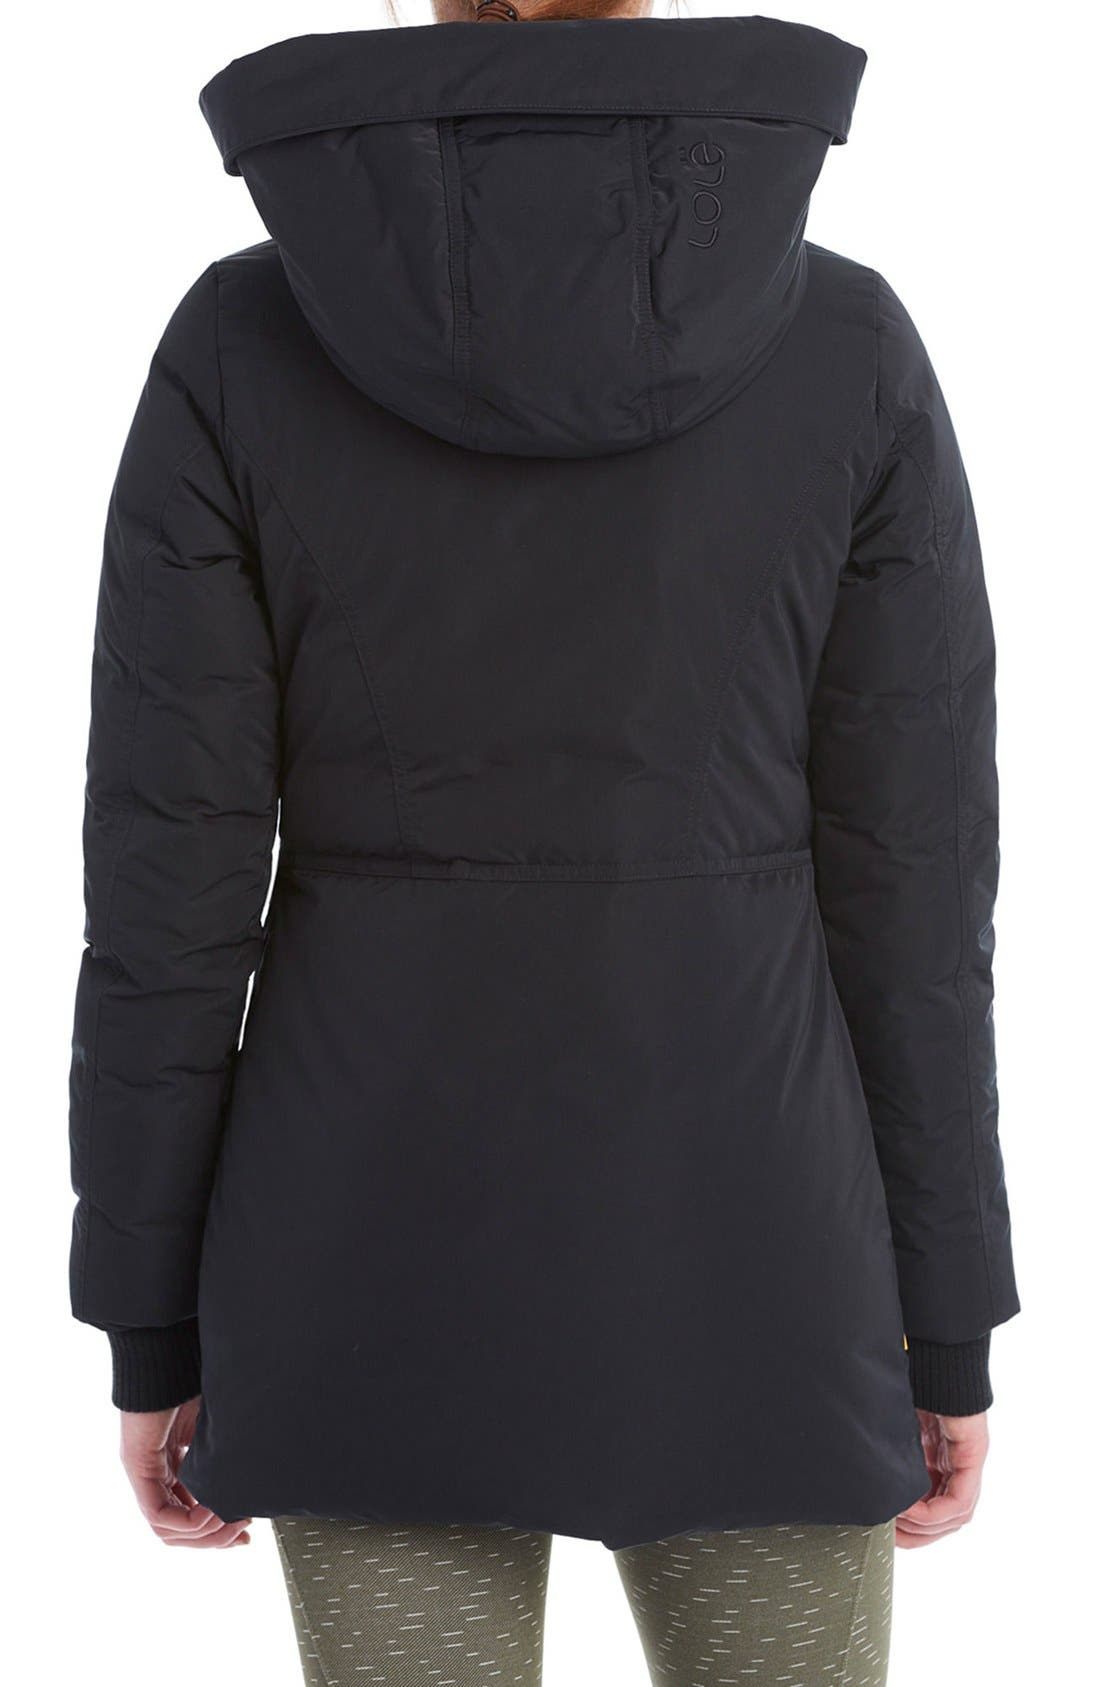 LOLE,                             'Nicky' Hooded Insulated Jacket,                             Alternate thumbnail 2, color,                             001